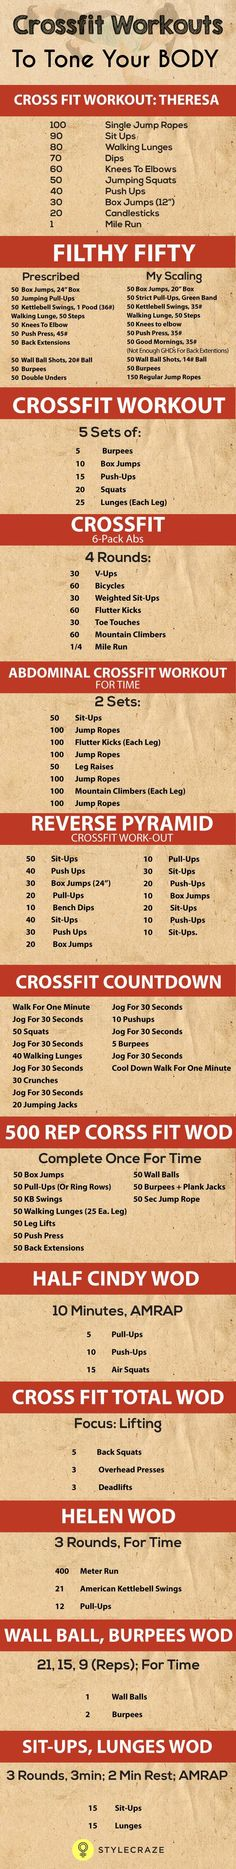 20 Effective Crossfit Workouts To Tone Your Body More